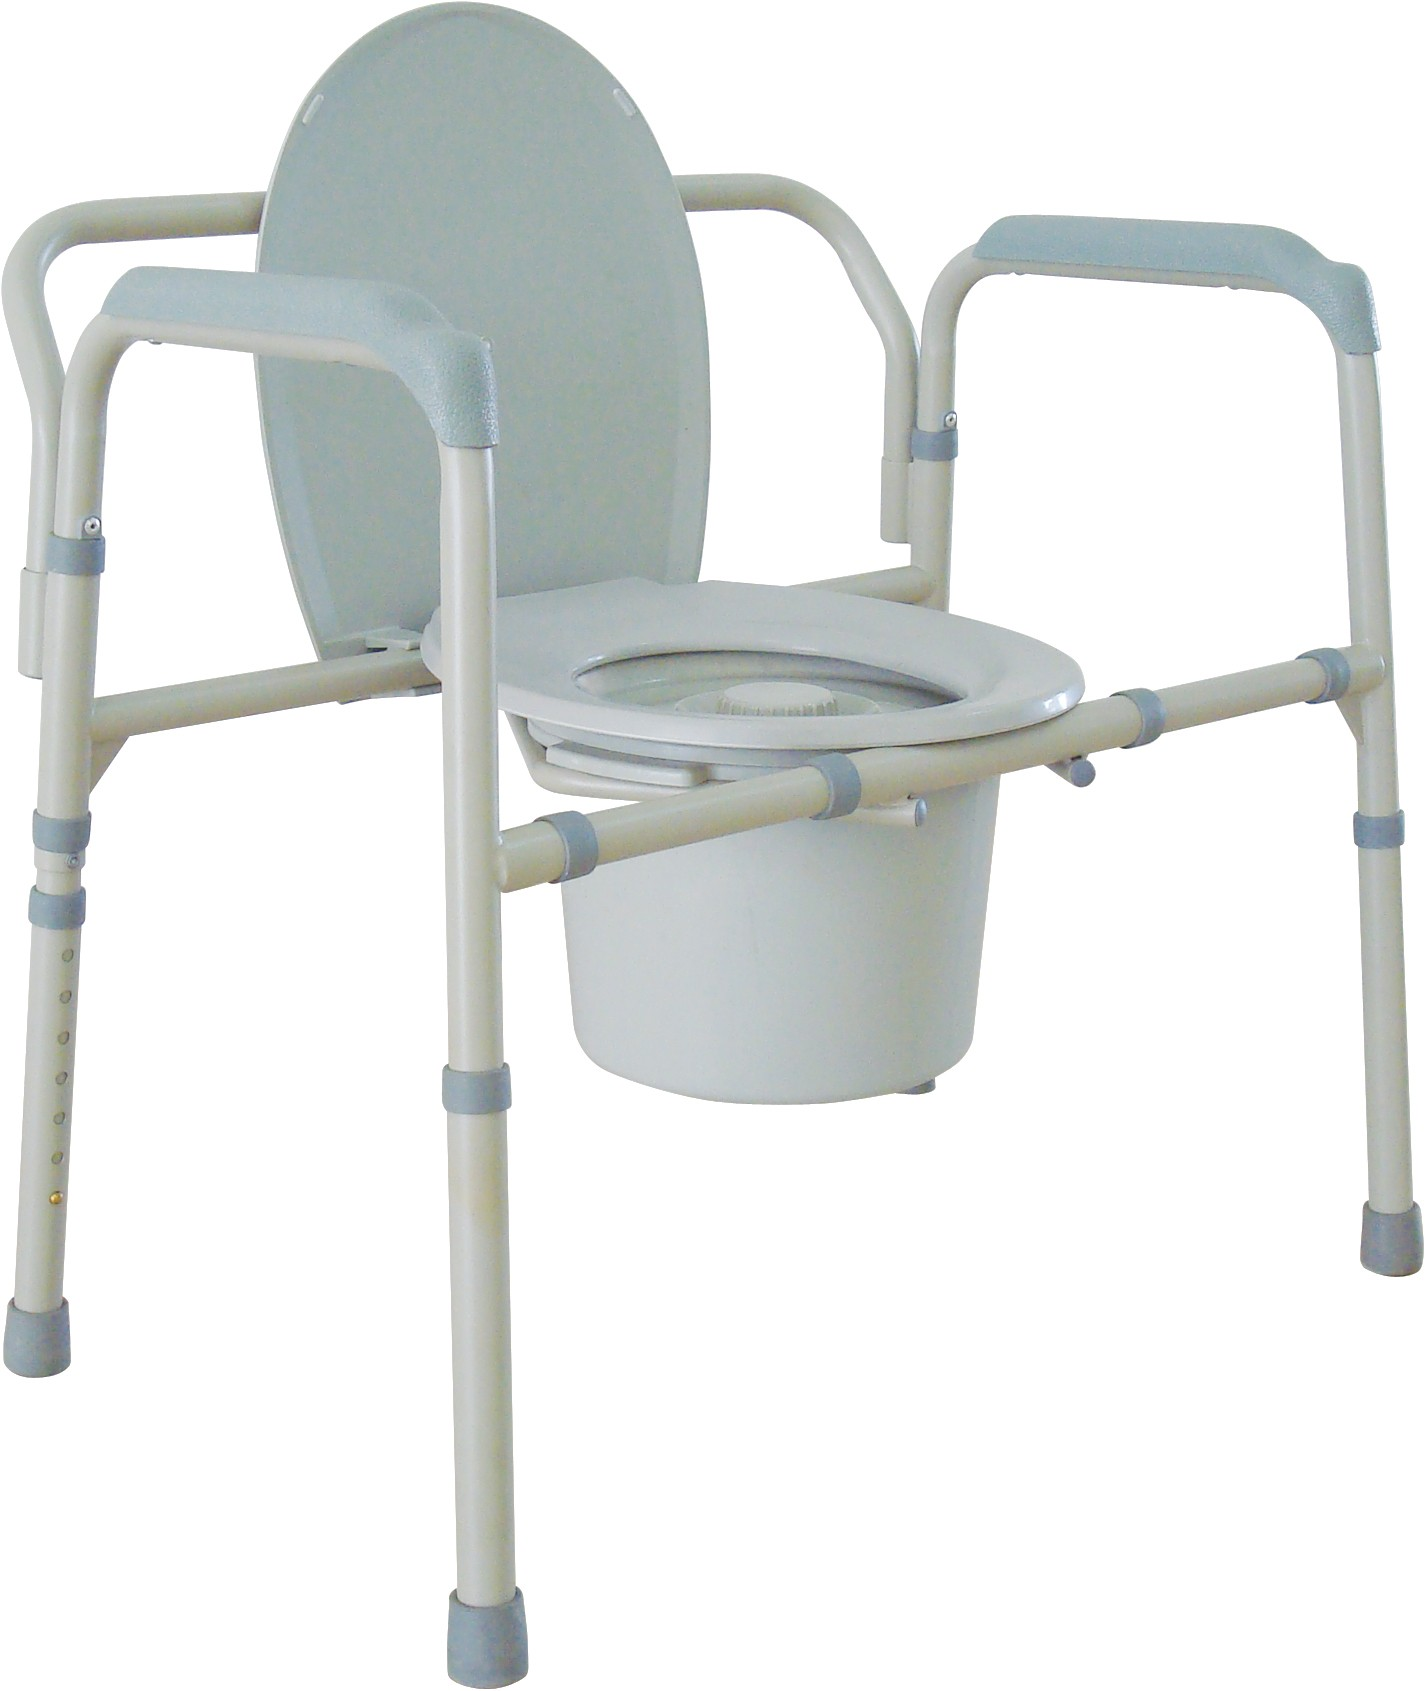 Bariatic Steel Commode Enlarged